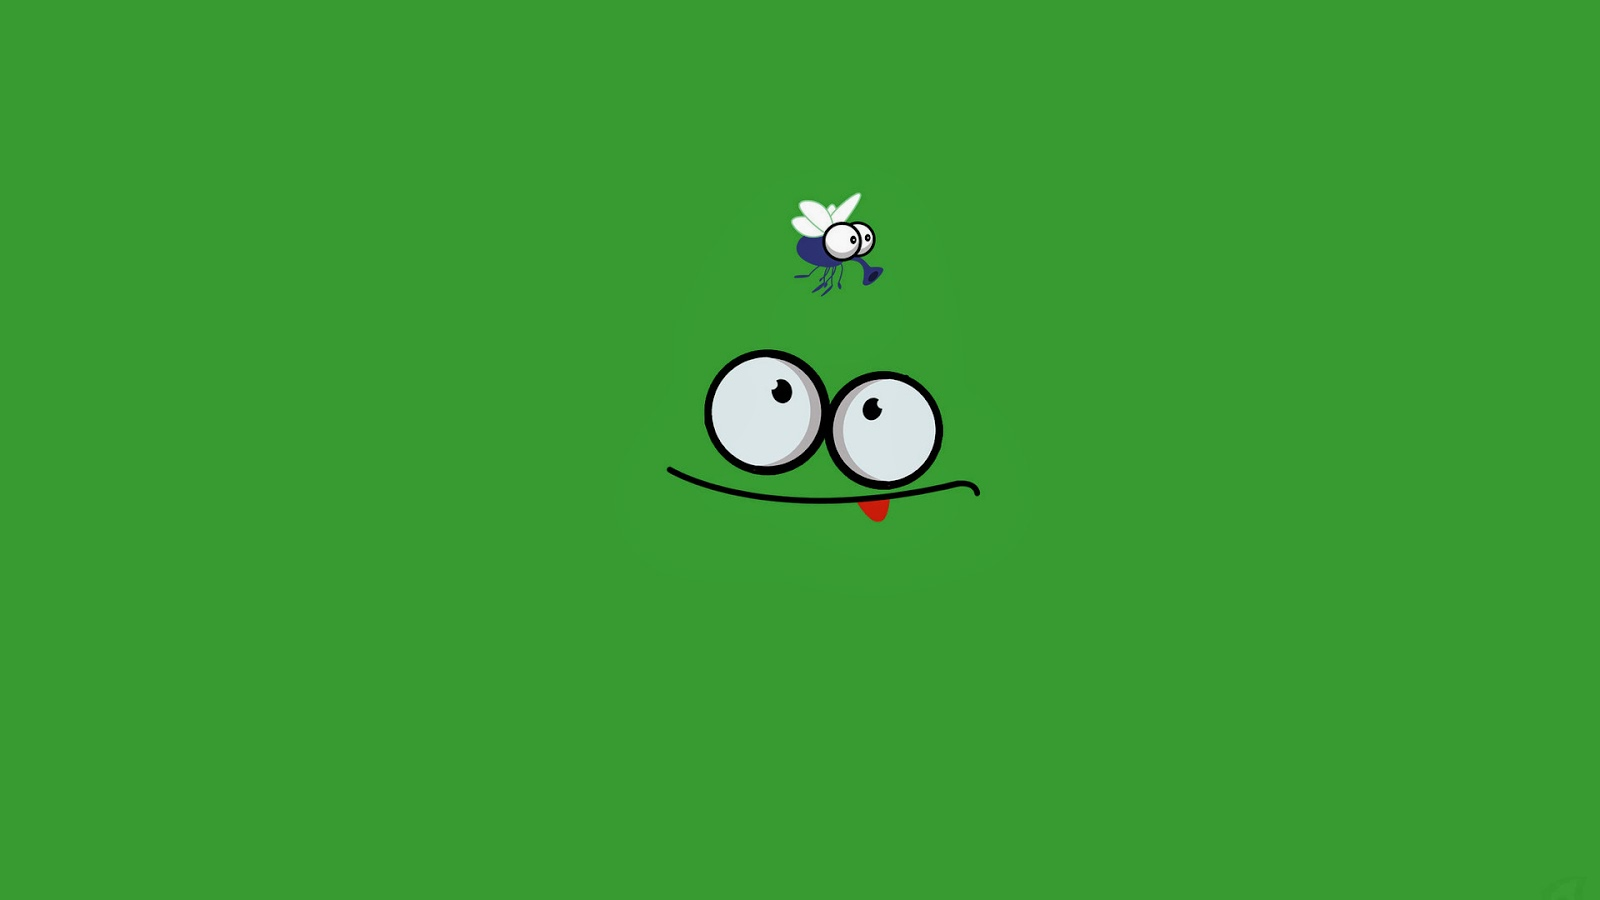 Cute Wallpapers For Girls Mobile Beautiful Minimalist Wallpapers For Your Desktop Most